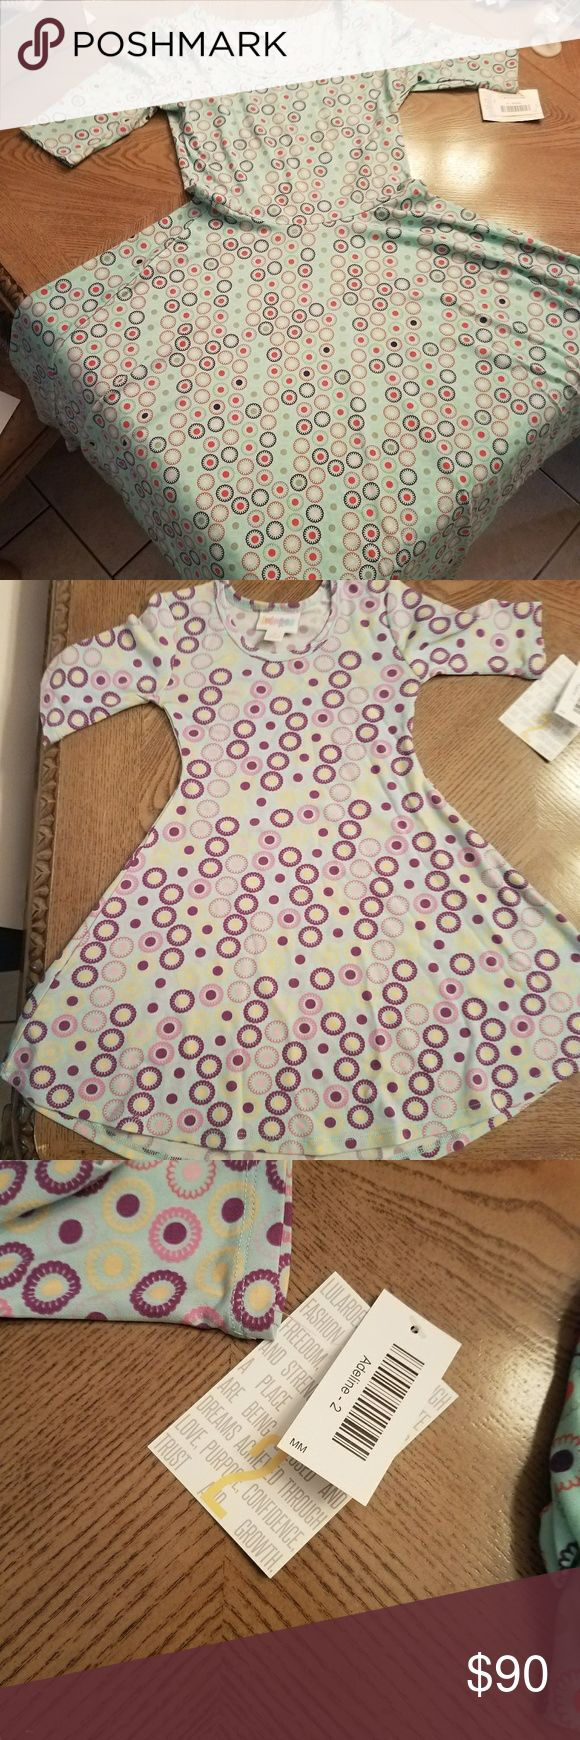 LuLaroe S Nicole & size 2 Adeline mommy & me Both NWT in slinky material Look stunning with your daughter in matching LuLaroe fashion were. I am not a consultant and therefore pay full retail for my clothing. LuLaRoe Dresses Midi